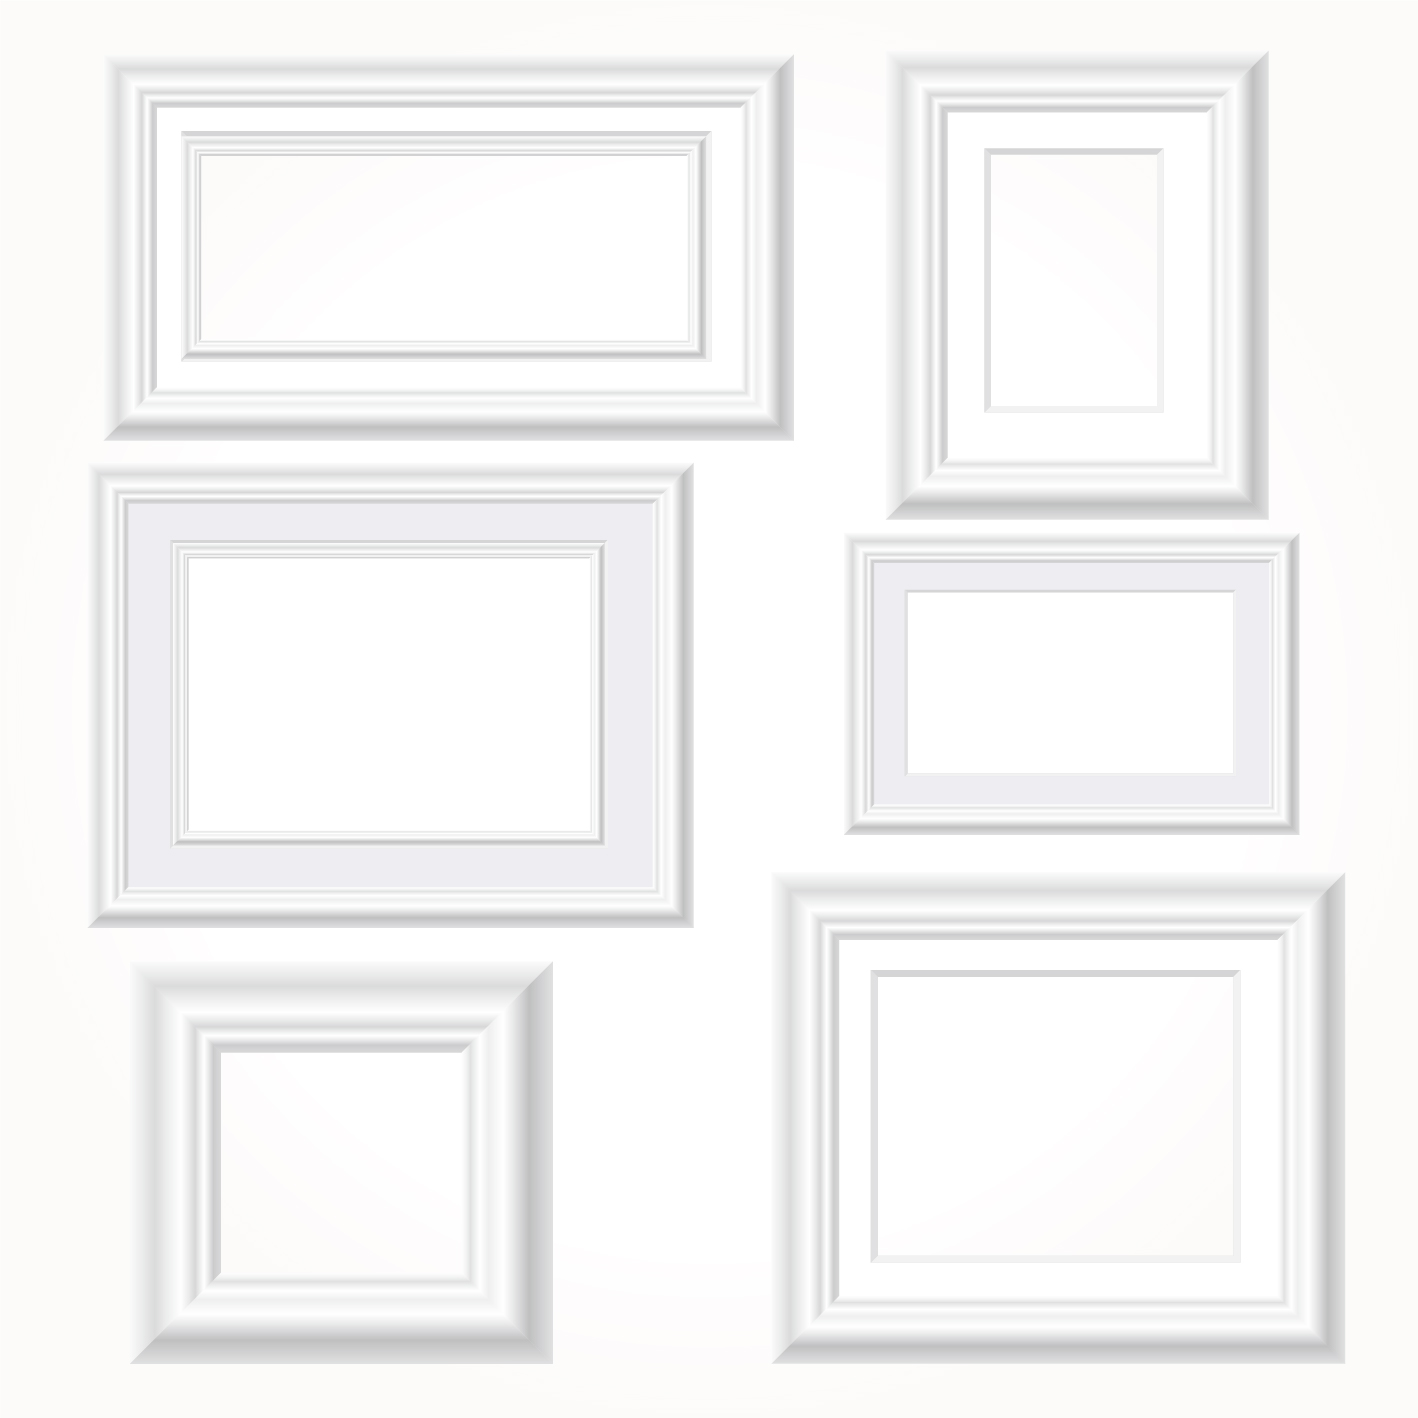 White photo frames vector set - Vector Frames & Borders free download